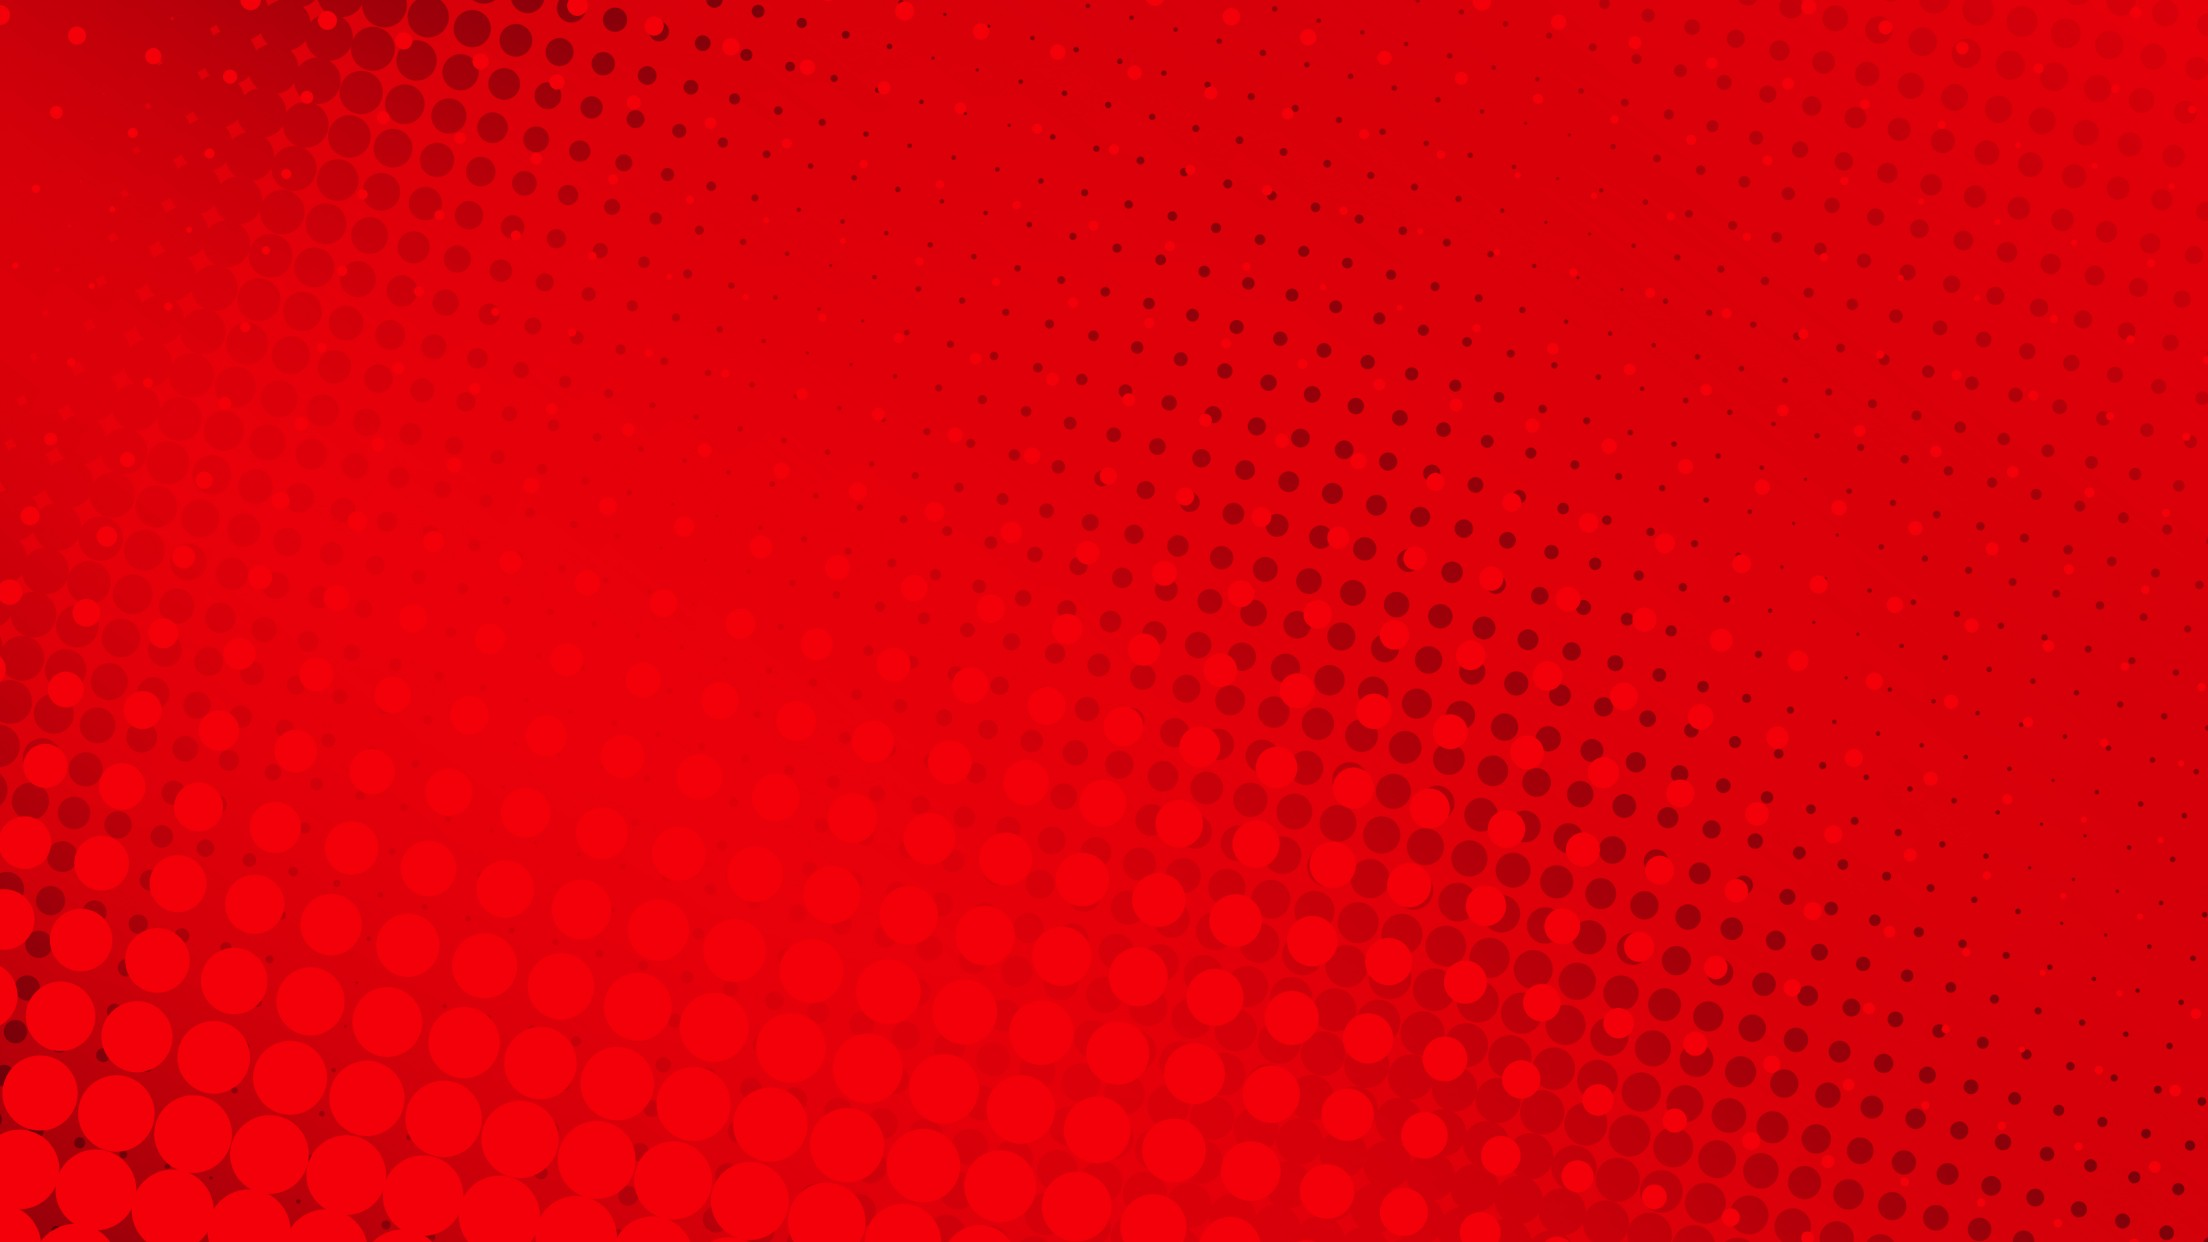 Red halftone background – HD Wallpapers , HD Backgrounds ...